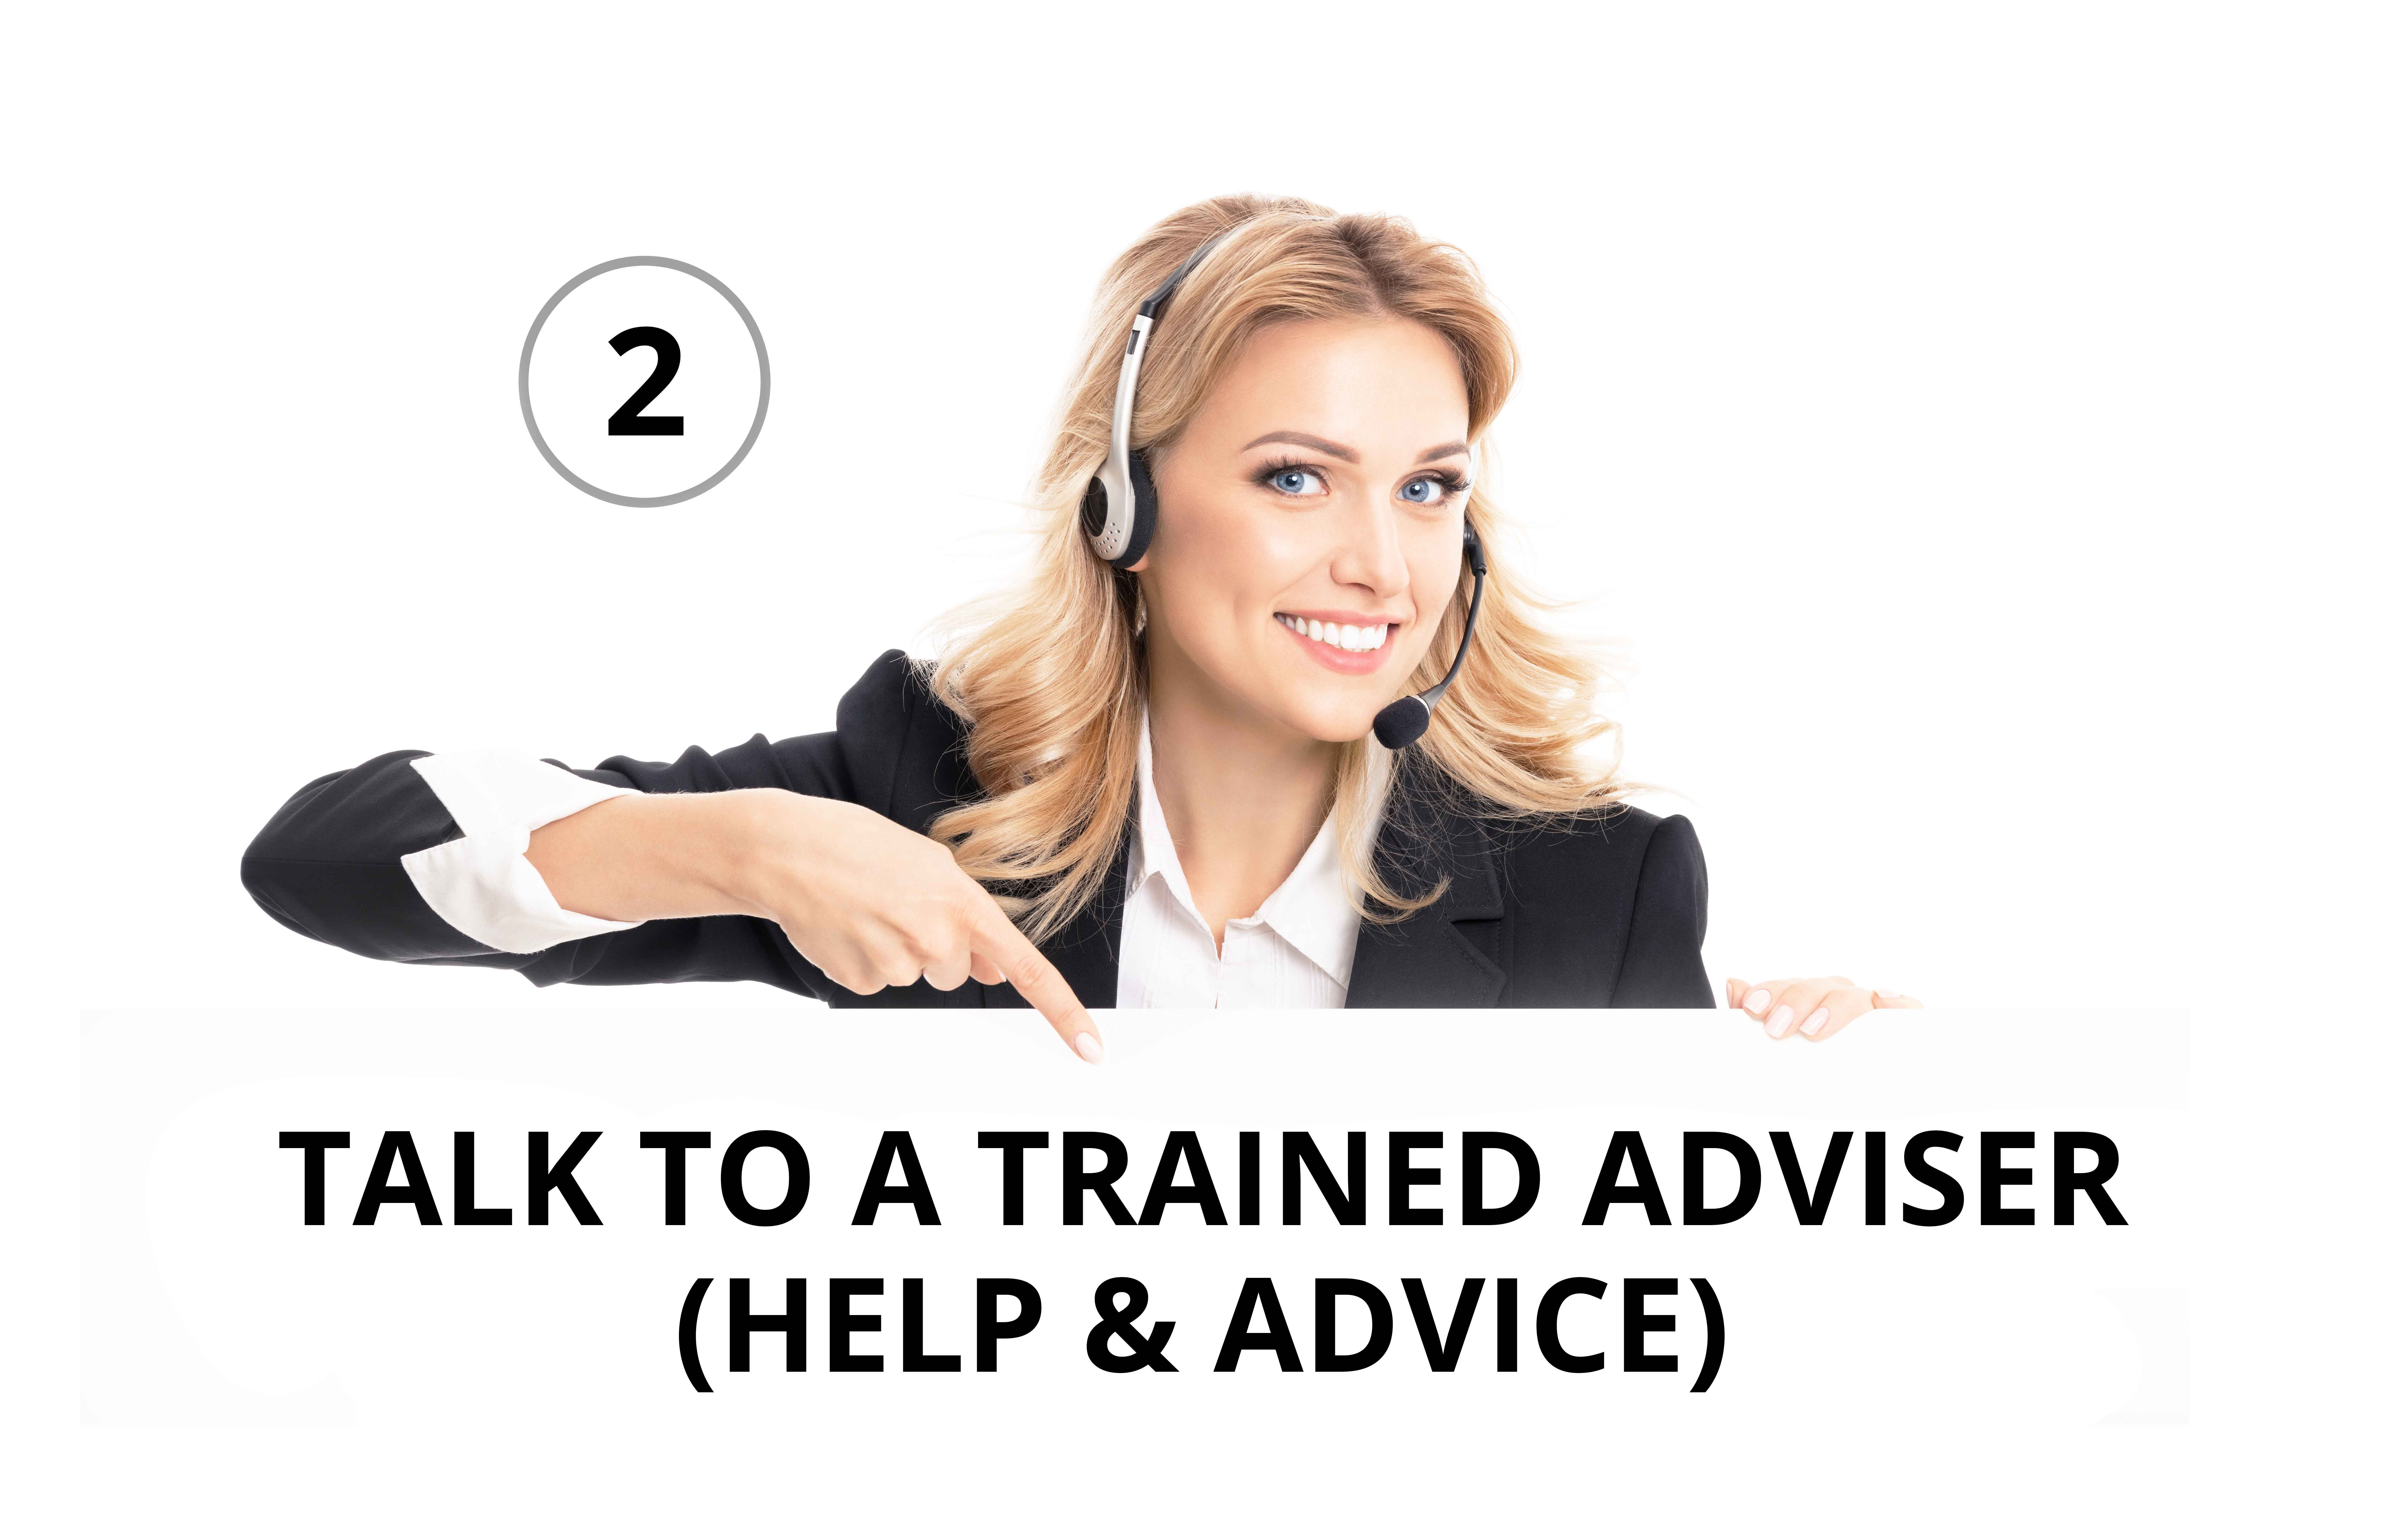 TALK TO TRAINED ADVISER (ANSWER & QUESTION)